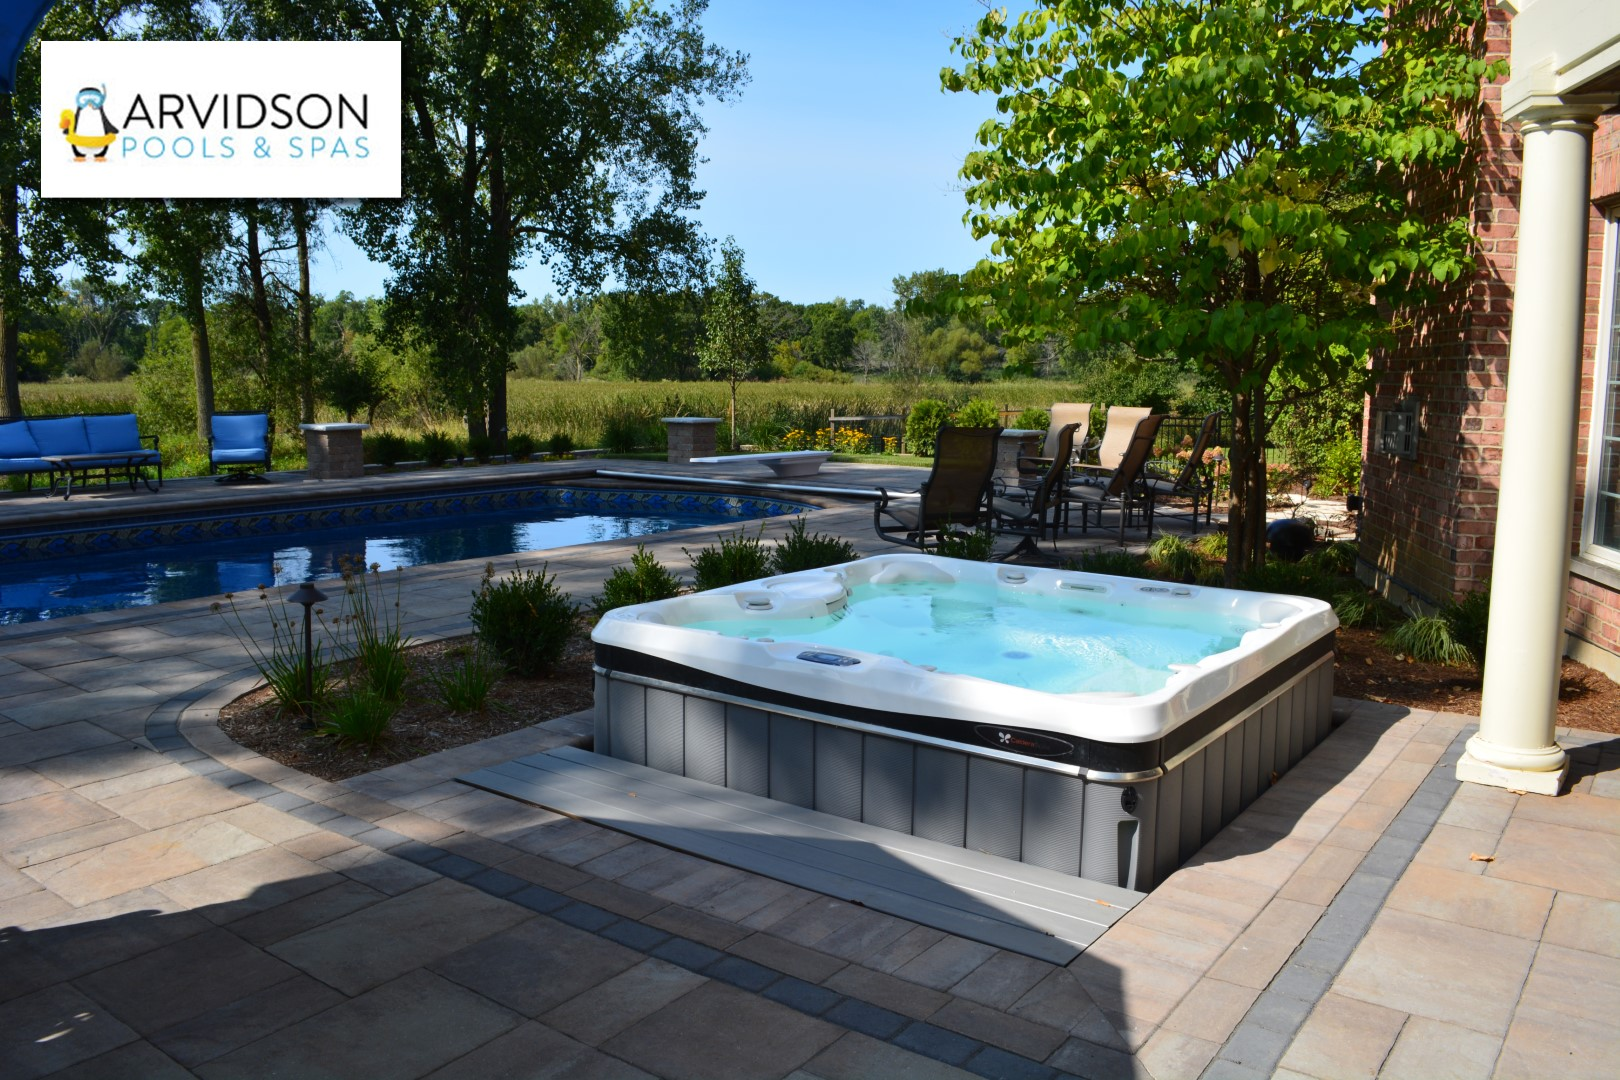 Arvidsons Pools & Spas